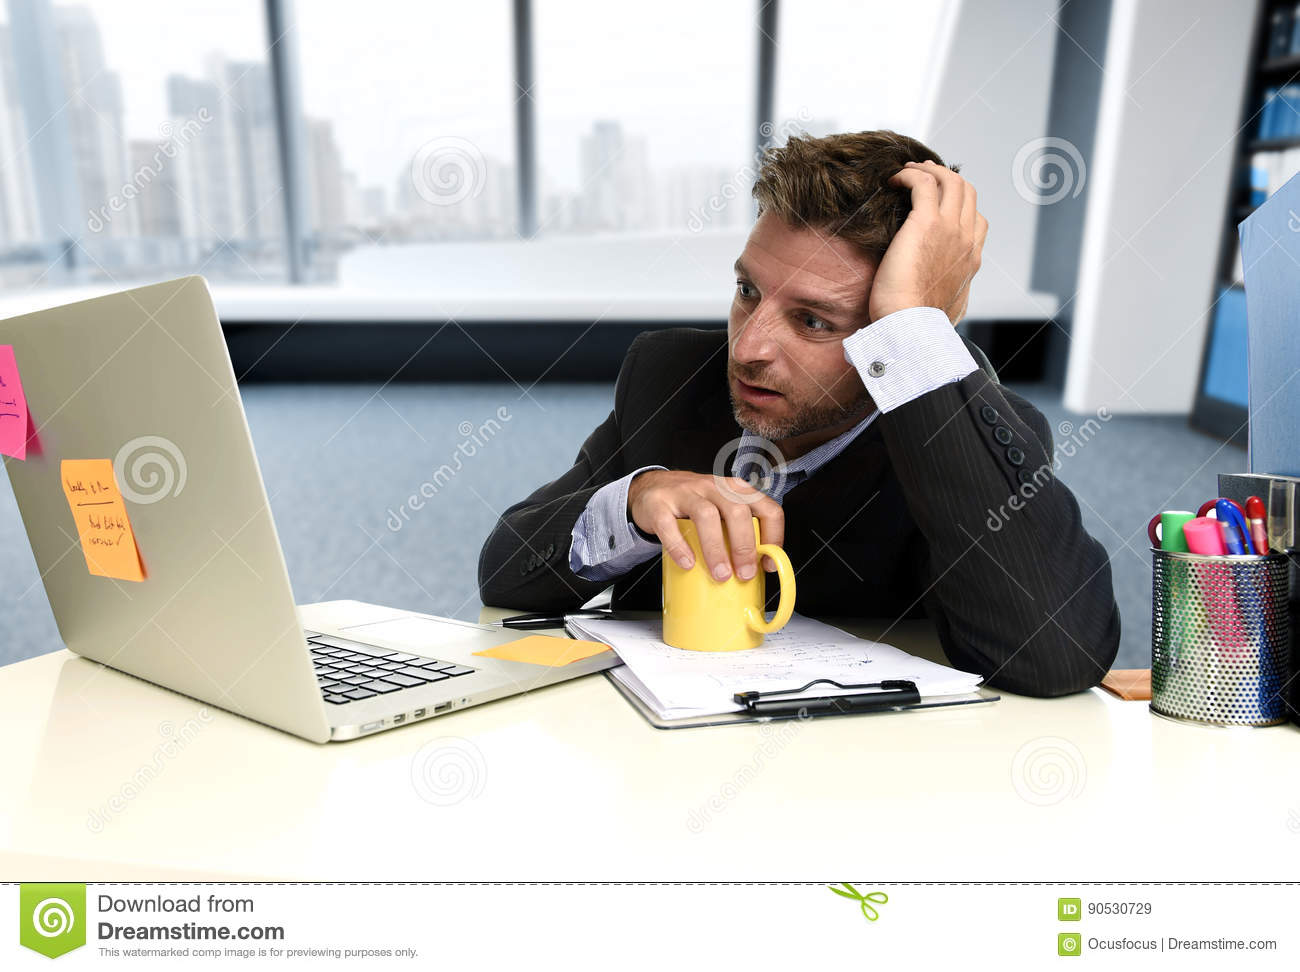 Frustrated businessman desperate face expression suffering stress at office computer desk